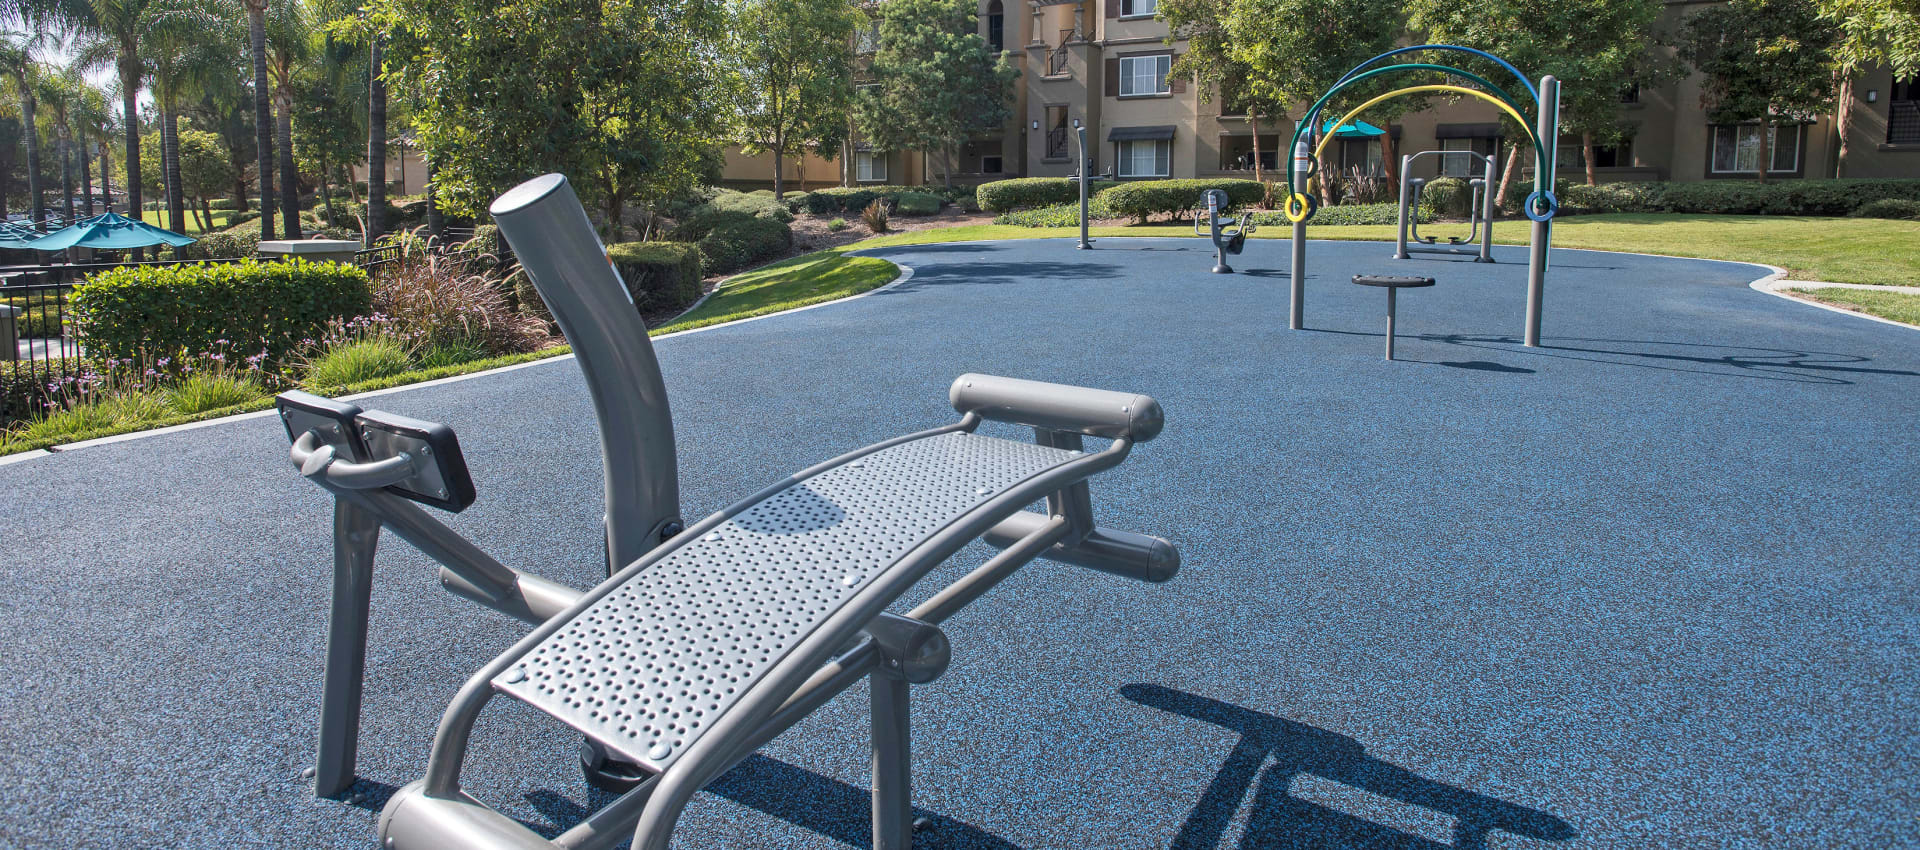 Outdoor Fitness Area at Esplanade Apartment Homes in Riverside, California